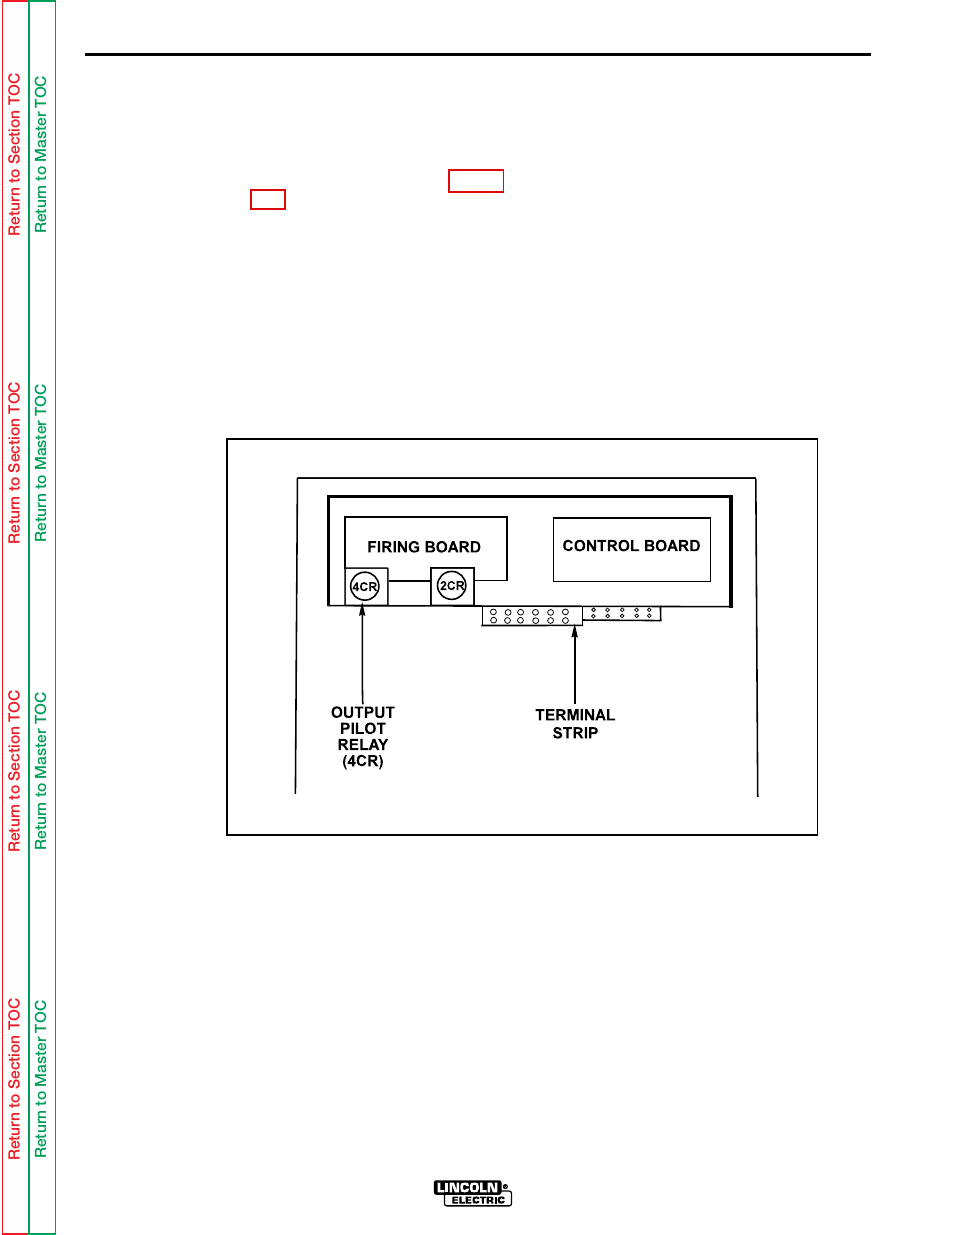 medium resolution of troubleshooting repair firing board test lincoln electric idealarc dc 1000 svm123 a user manual page 63 113